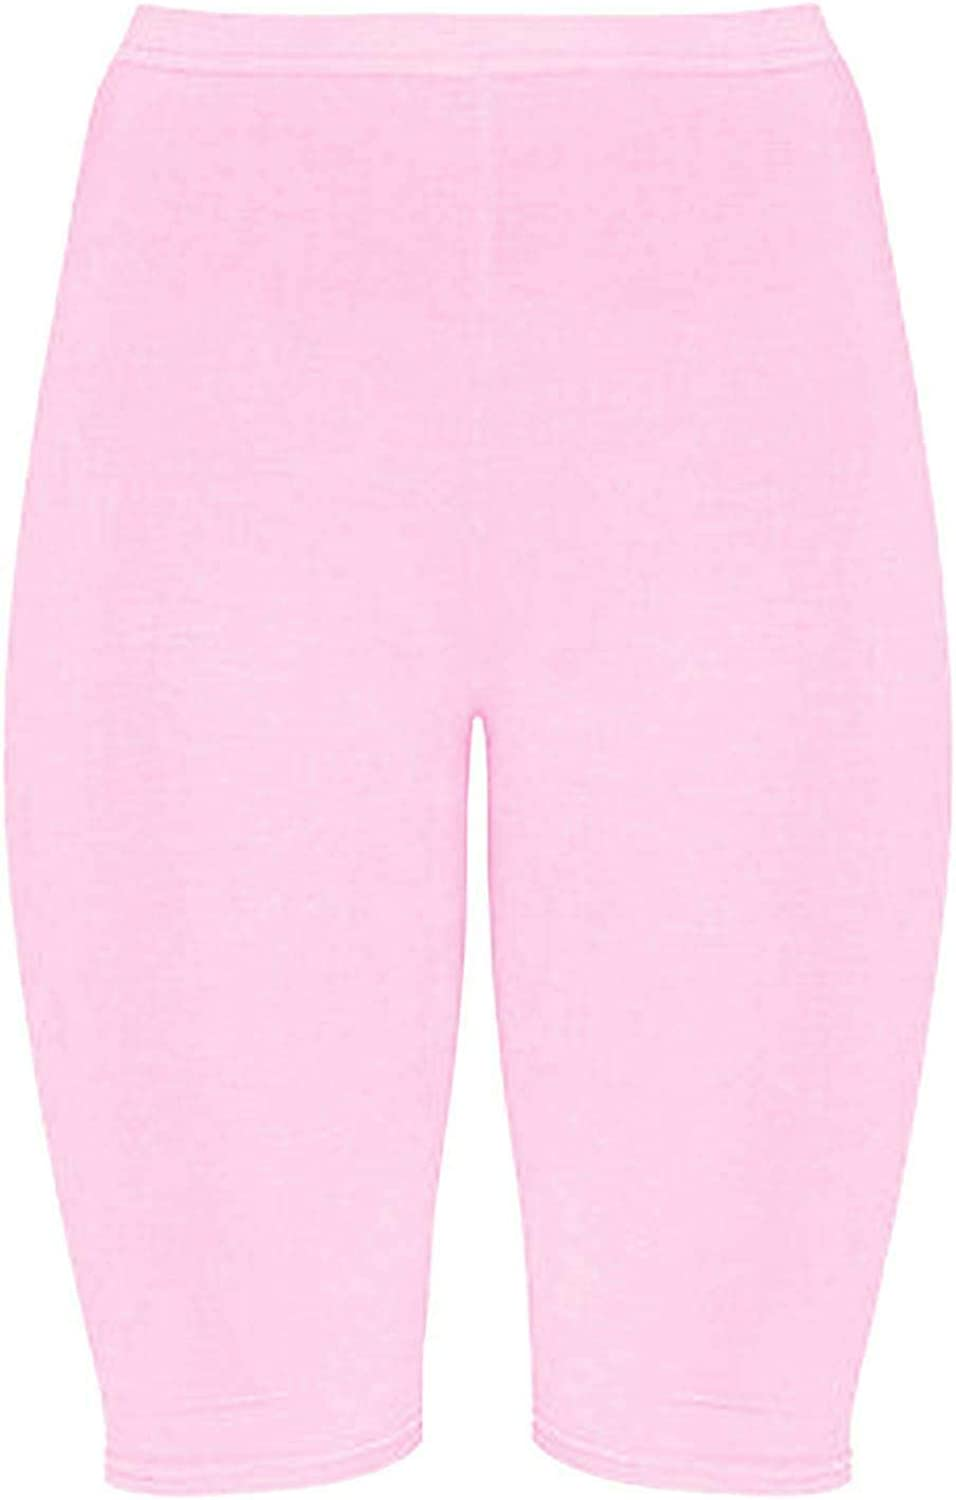 Janisramone New Womens Plain Stretchy Basic Dance Over Knee Active Gym Sports Cycling Shorts